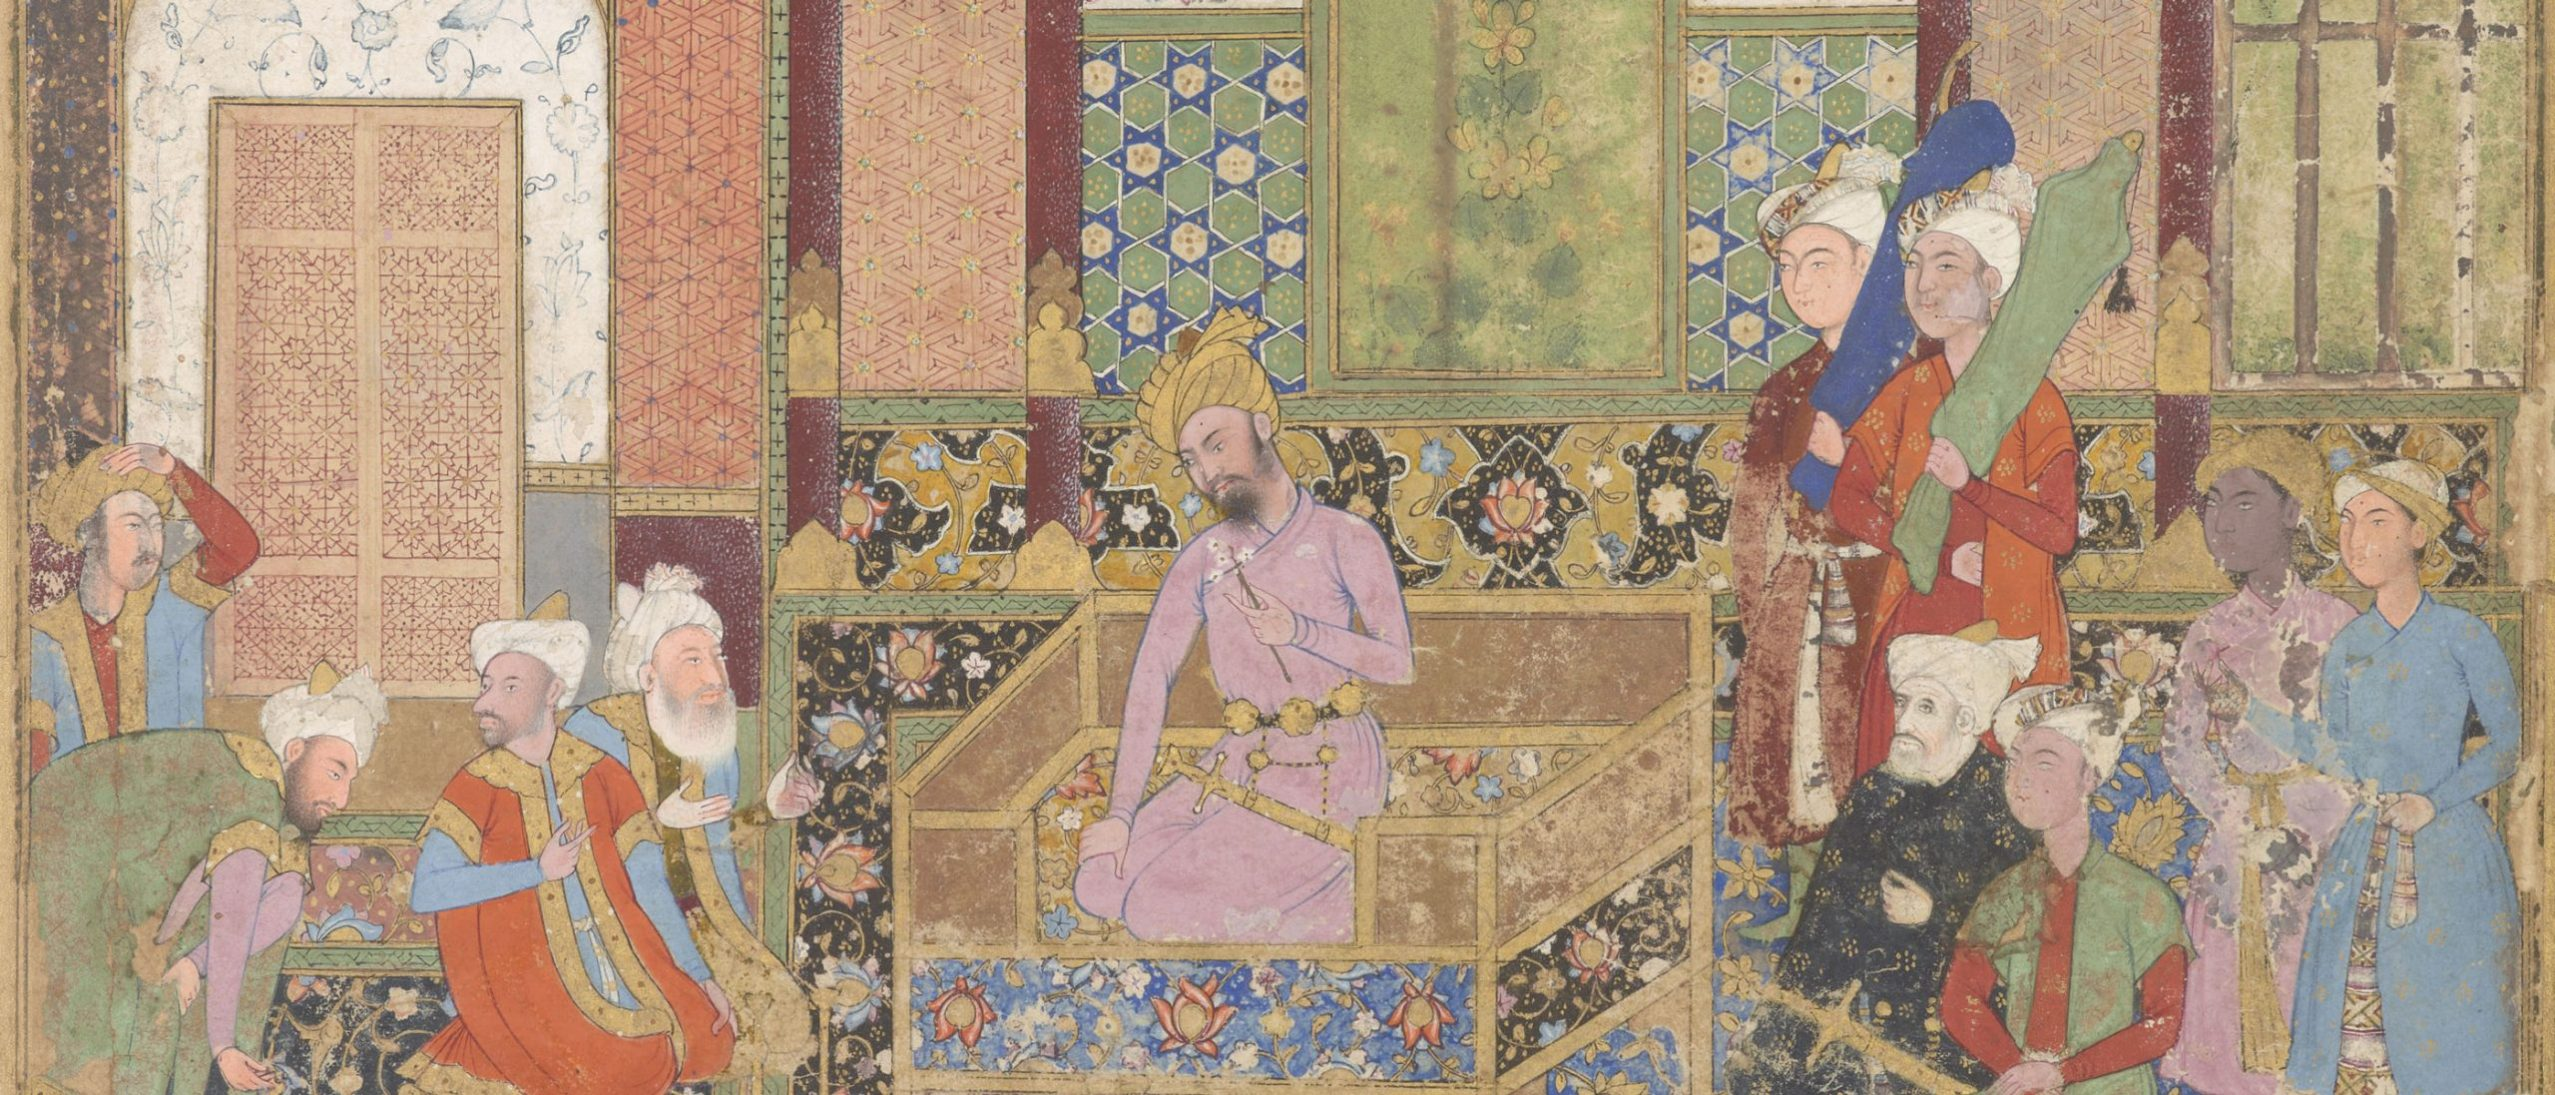 detail from a page from the baburnama